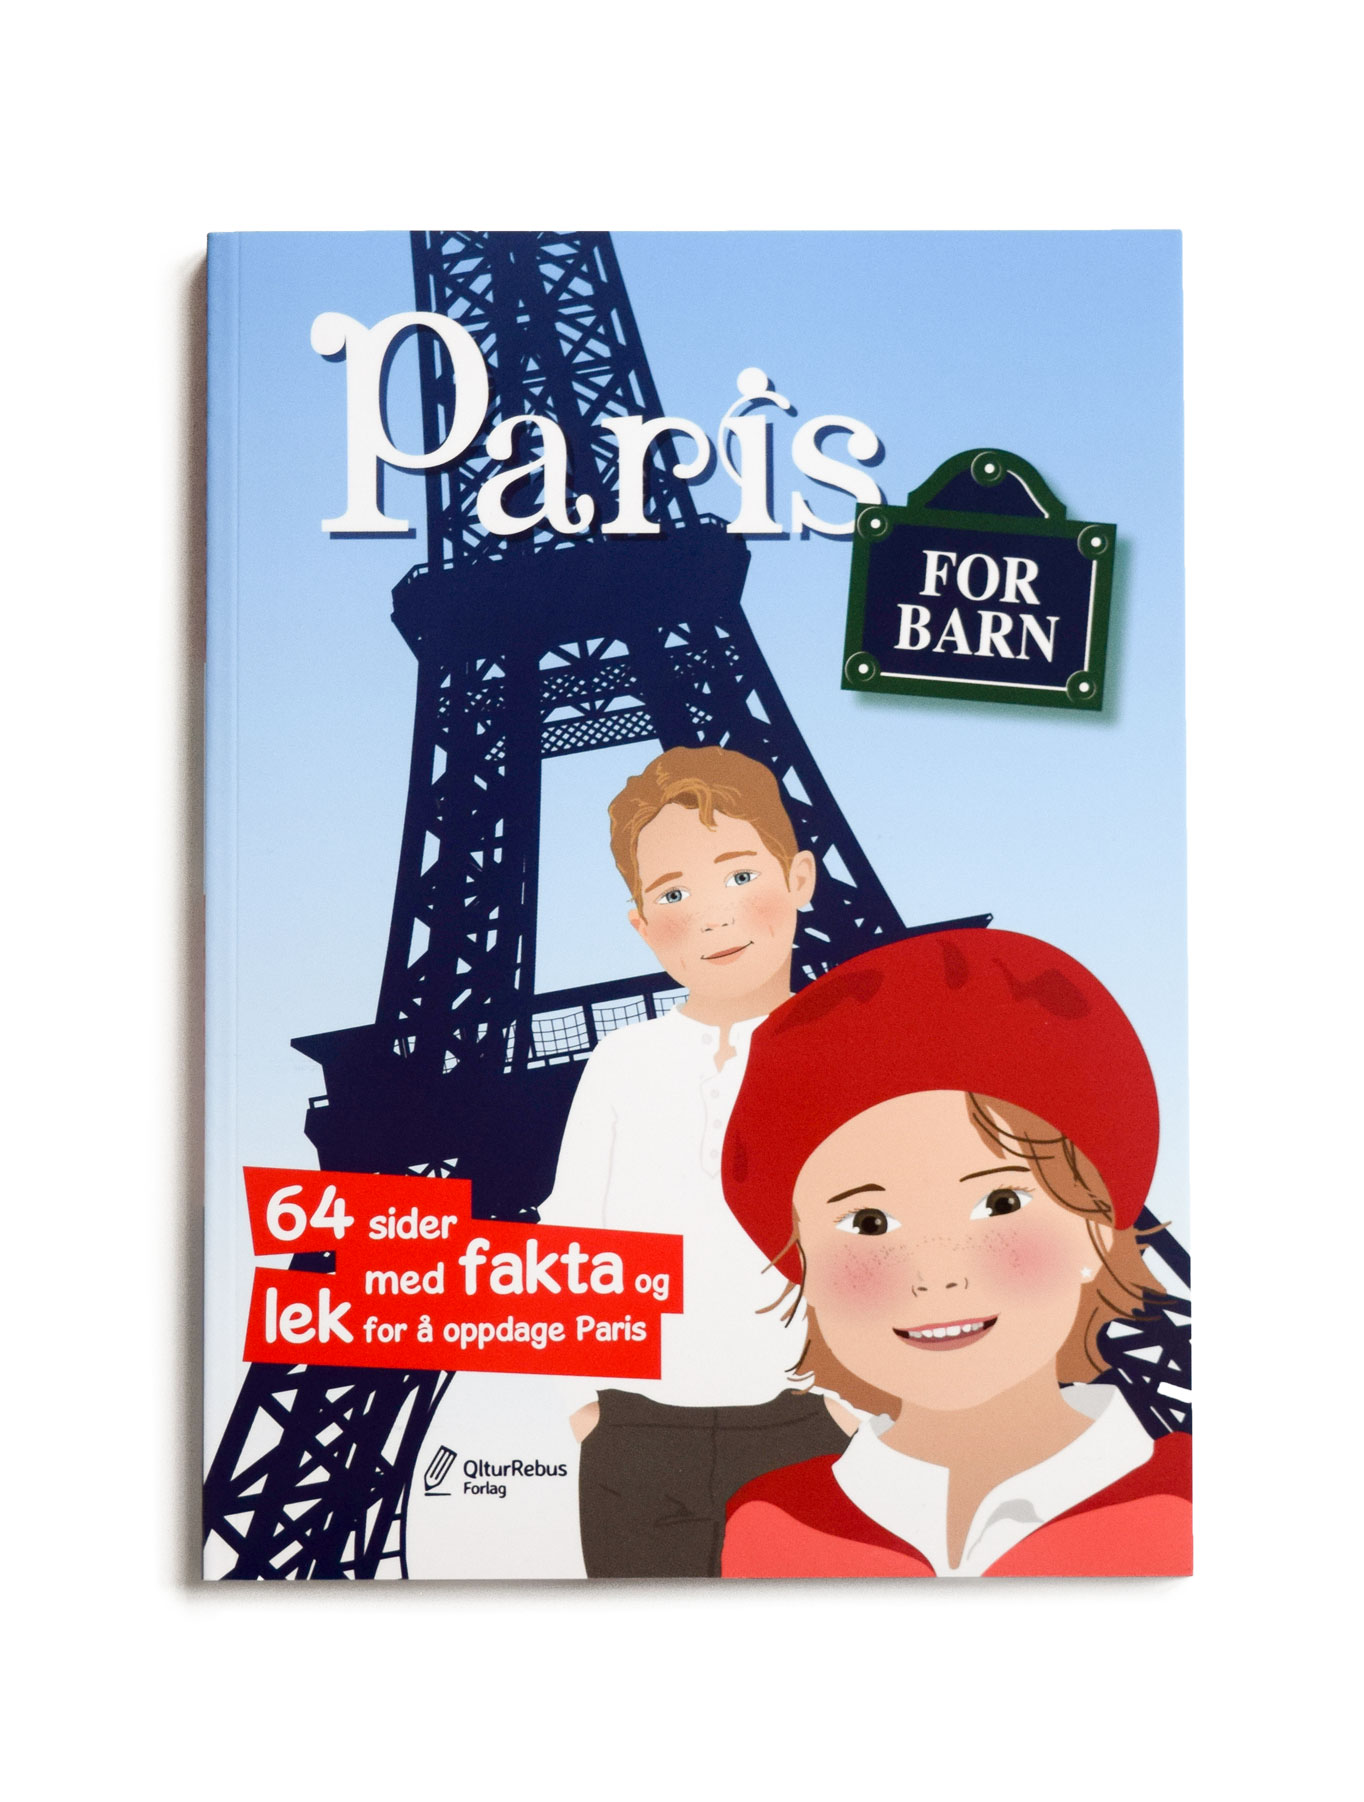 Qlturrebus_Paris_for_barn_cover_front.jpg